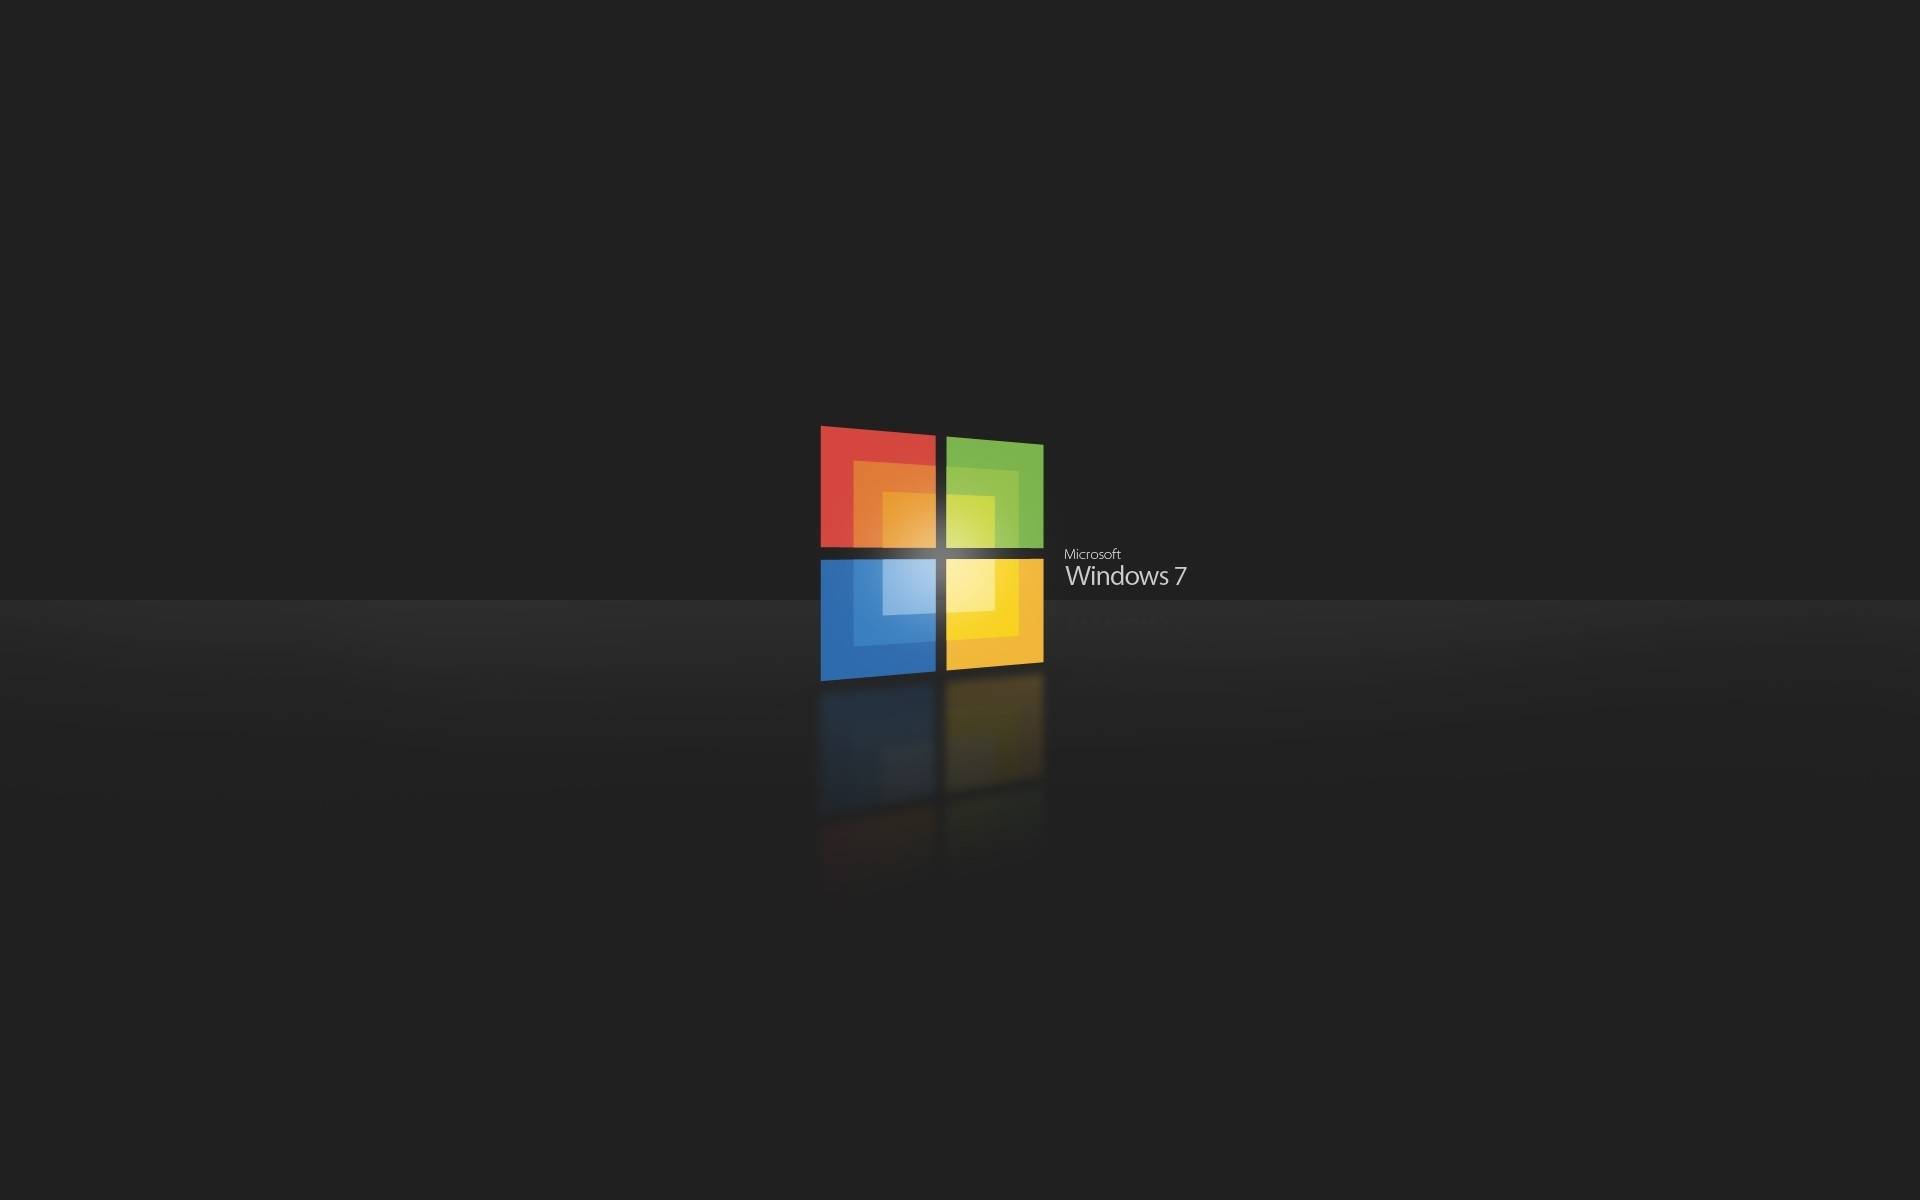 windows 7 operating systems 3d 1920x1200 wallpaper Quality Wallpapers 1920x1200